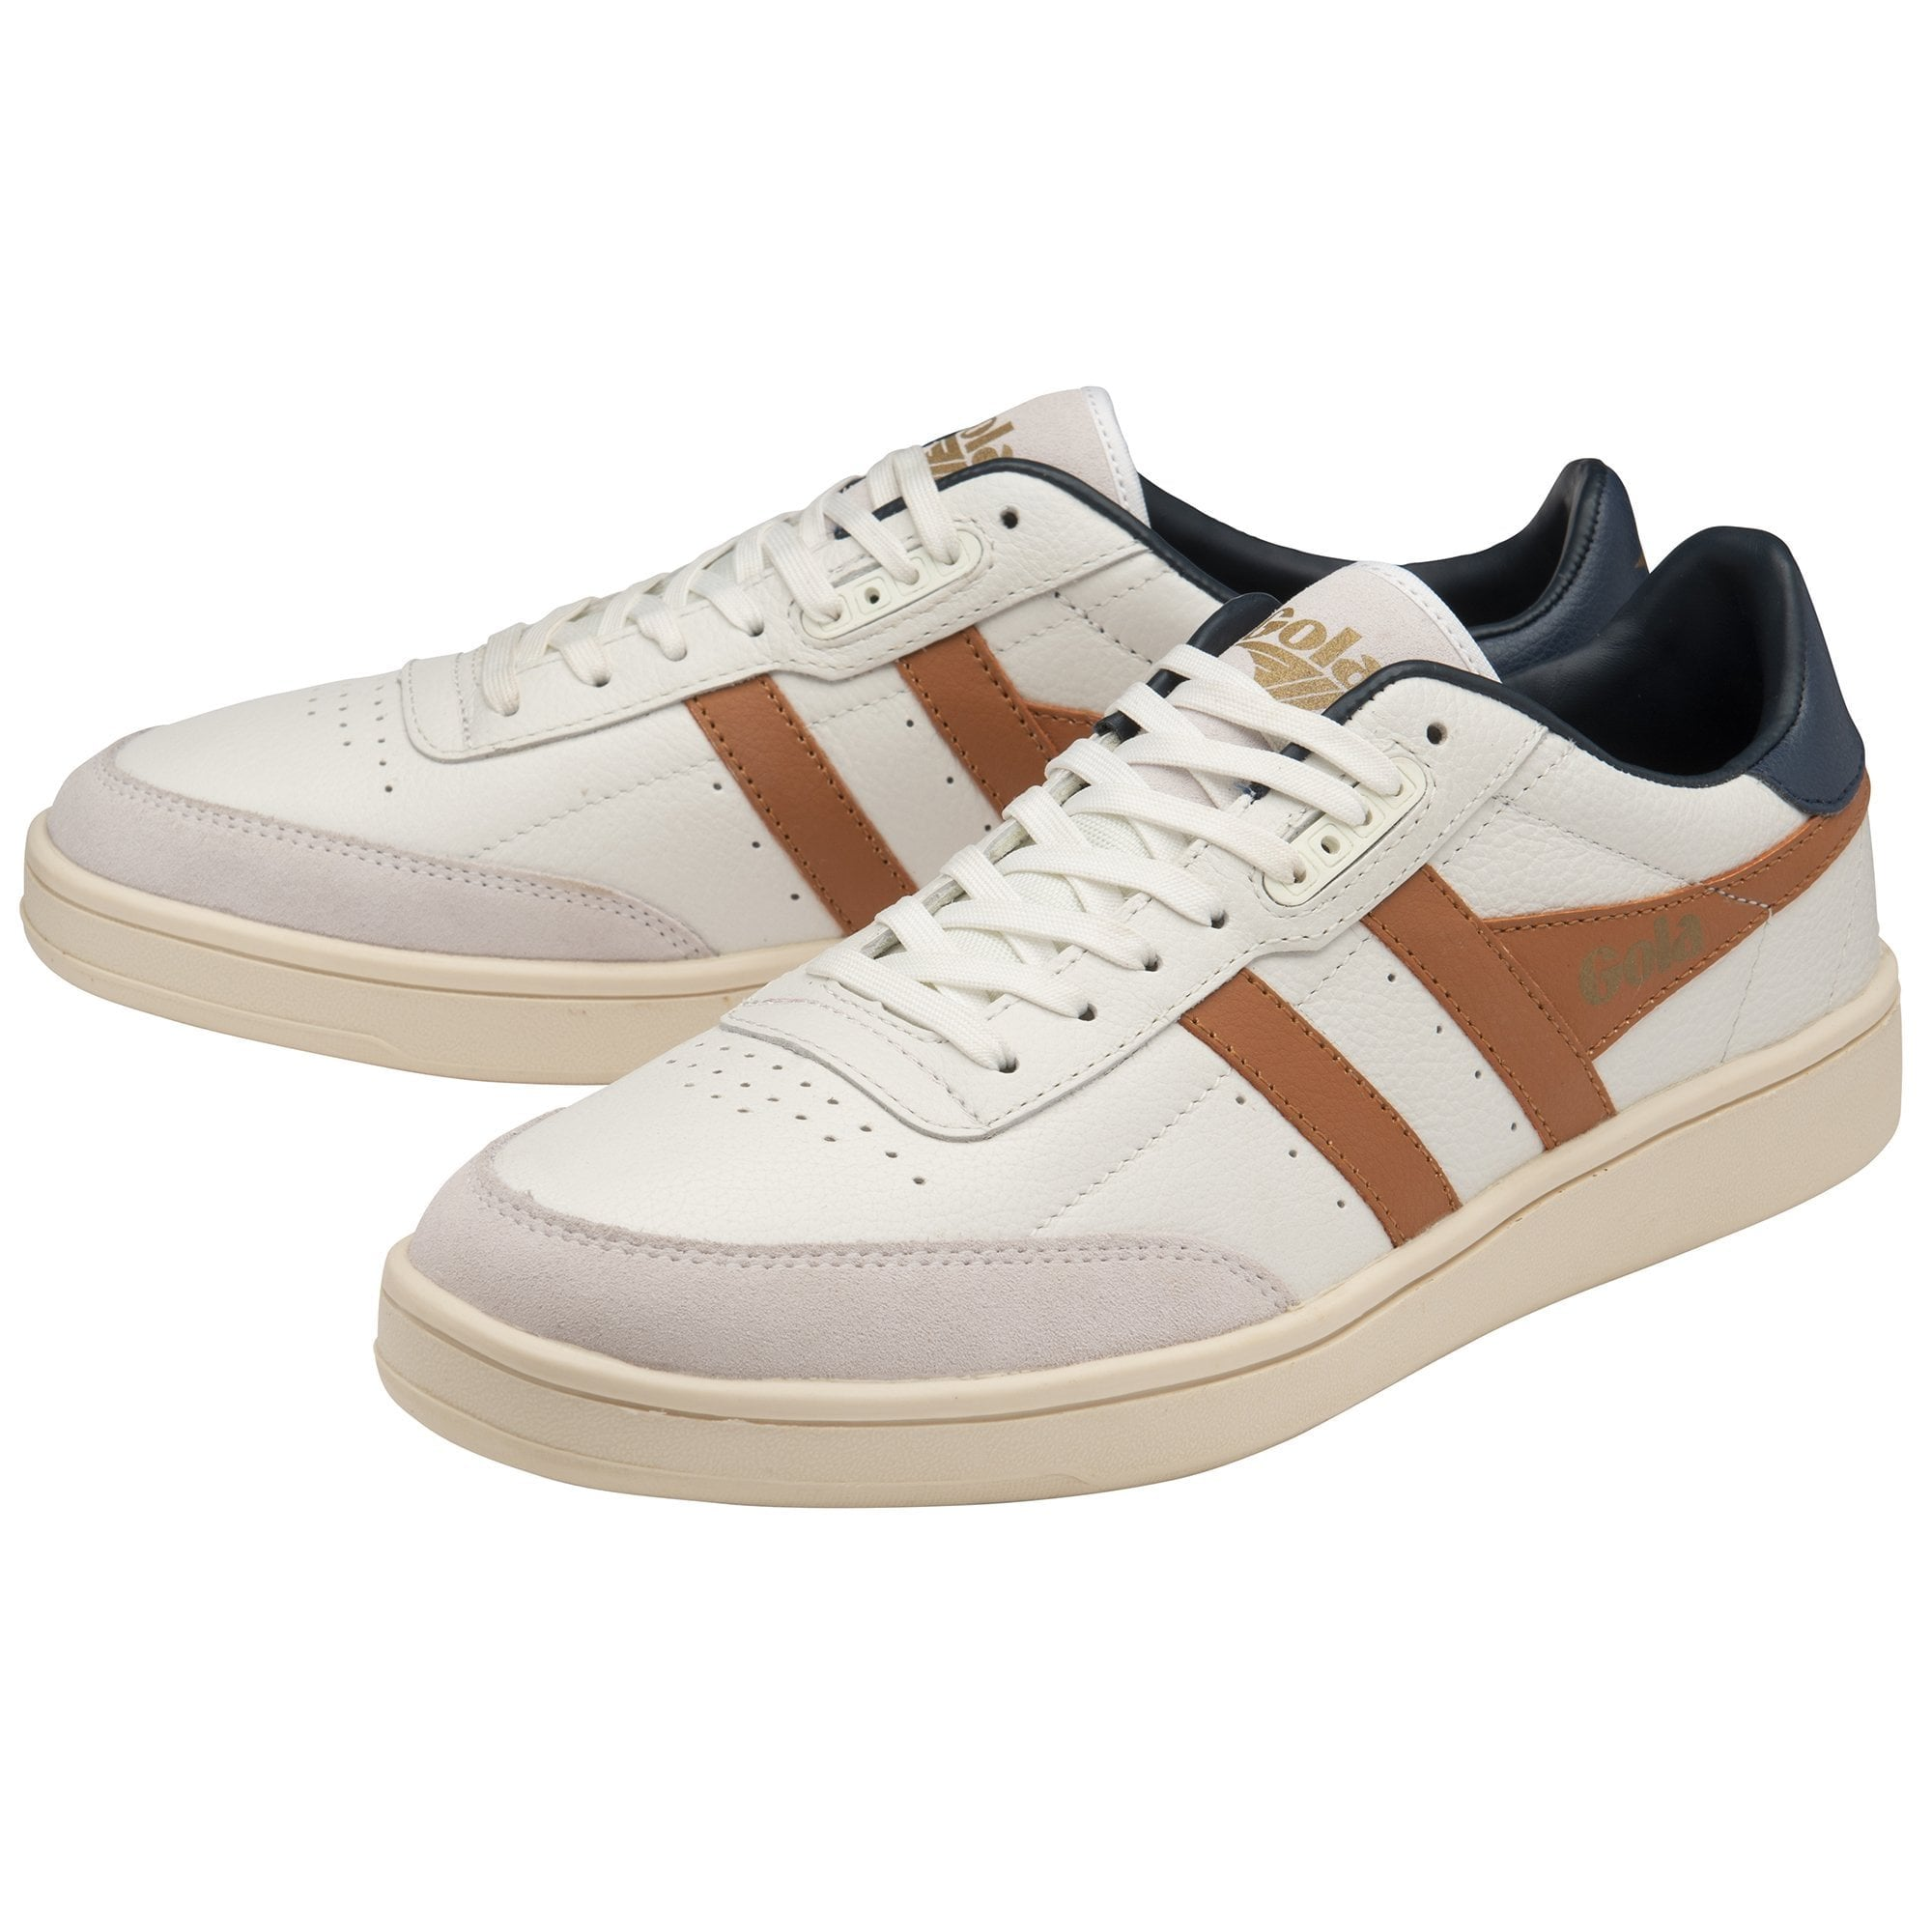 Men's Contact Leather Sneakers